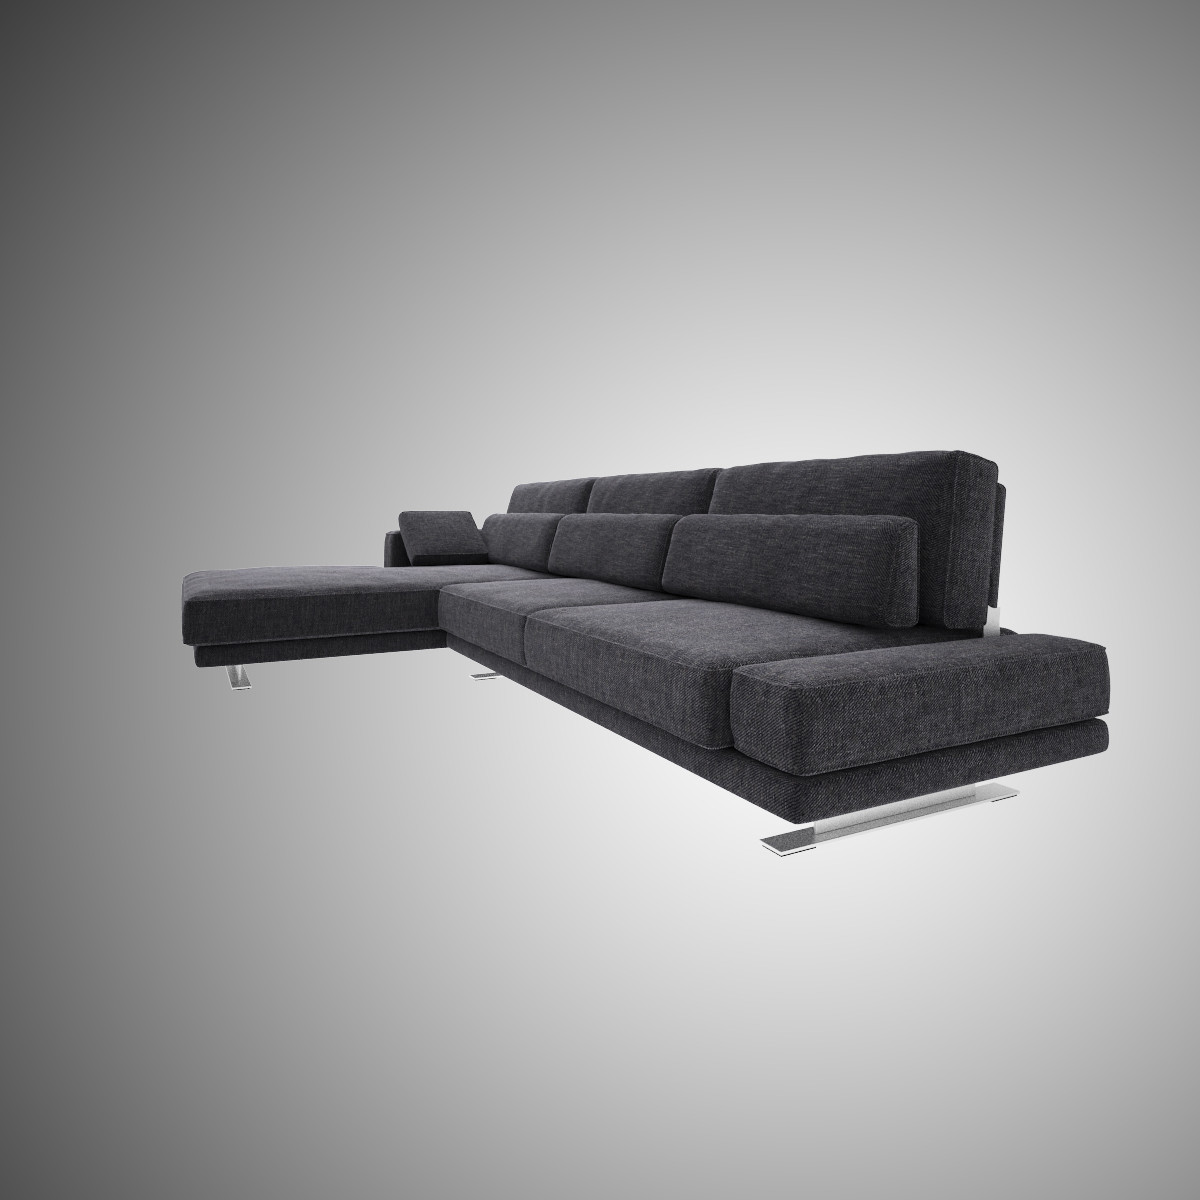 Sofa Rolf Benz Onda 3d Model Mera Leather Sofa Mera Collection By